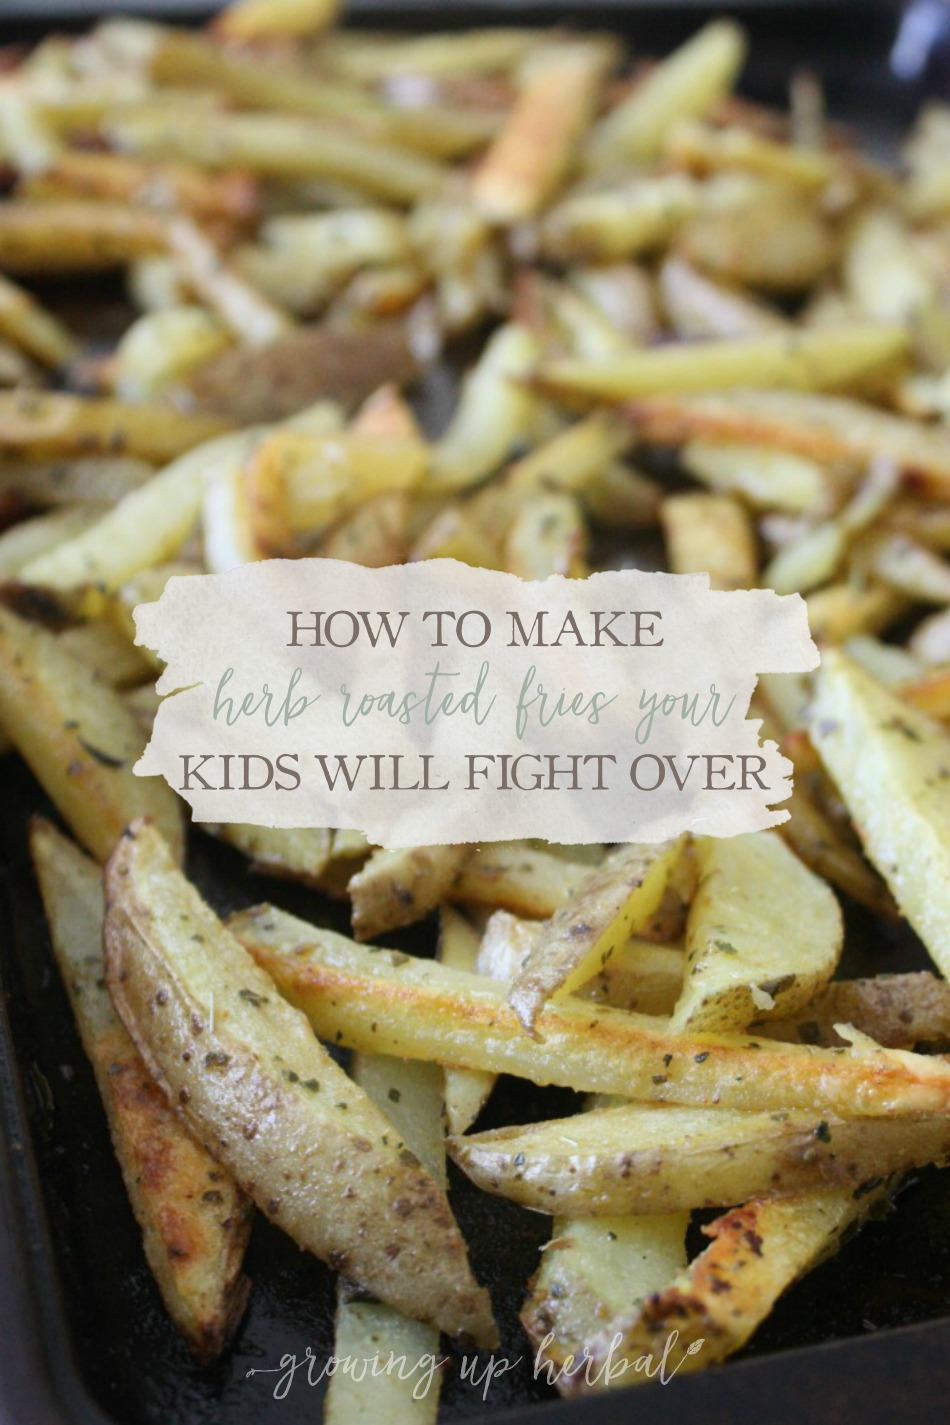 How To Make Herb Roasted Fries Your Kids Will Fight Over | Growing Up Herbal | A healthy side dish your kids will beg for!